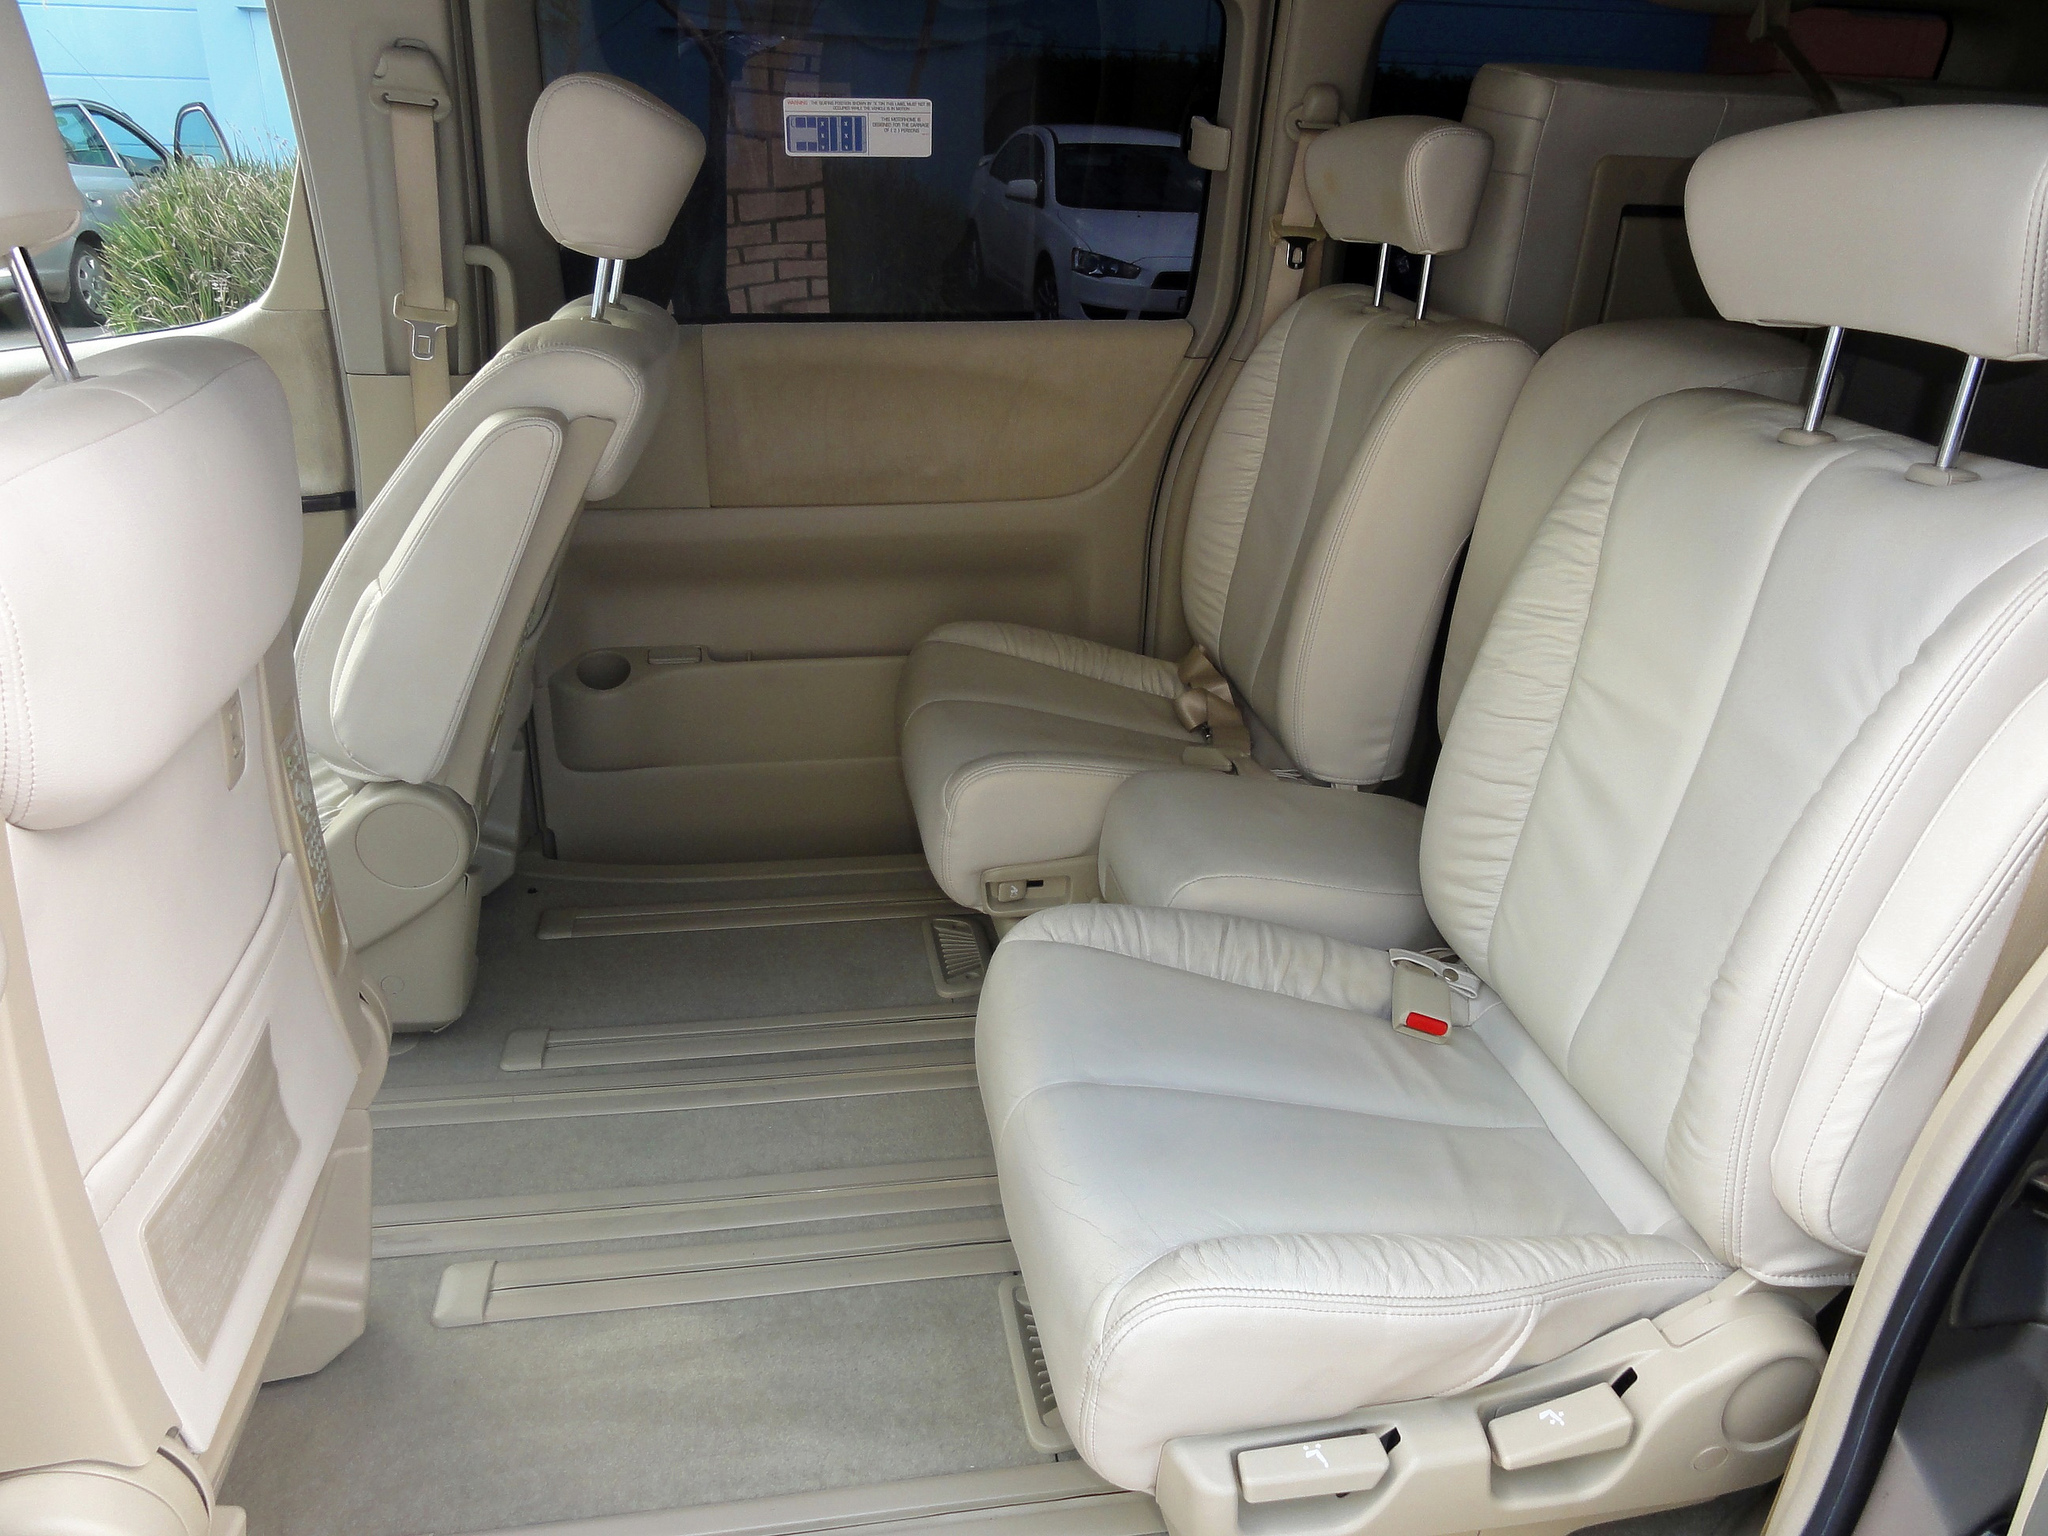 nissan elgrand e51 review andrew 39 s japanese cars. Black Bedroom Furniture Sets. Home Design Ideas